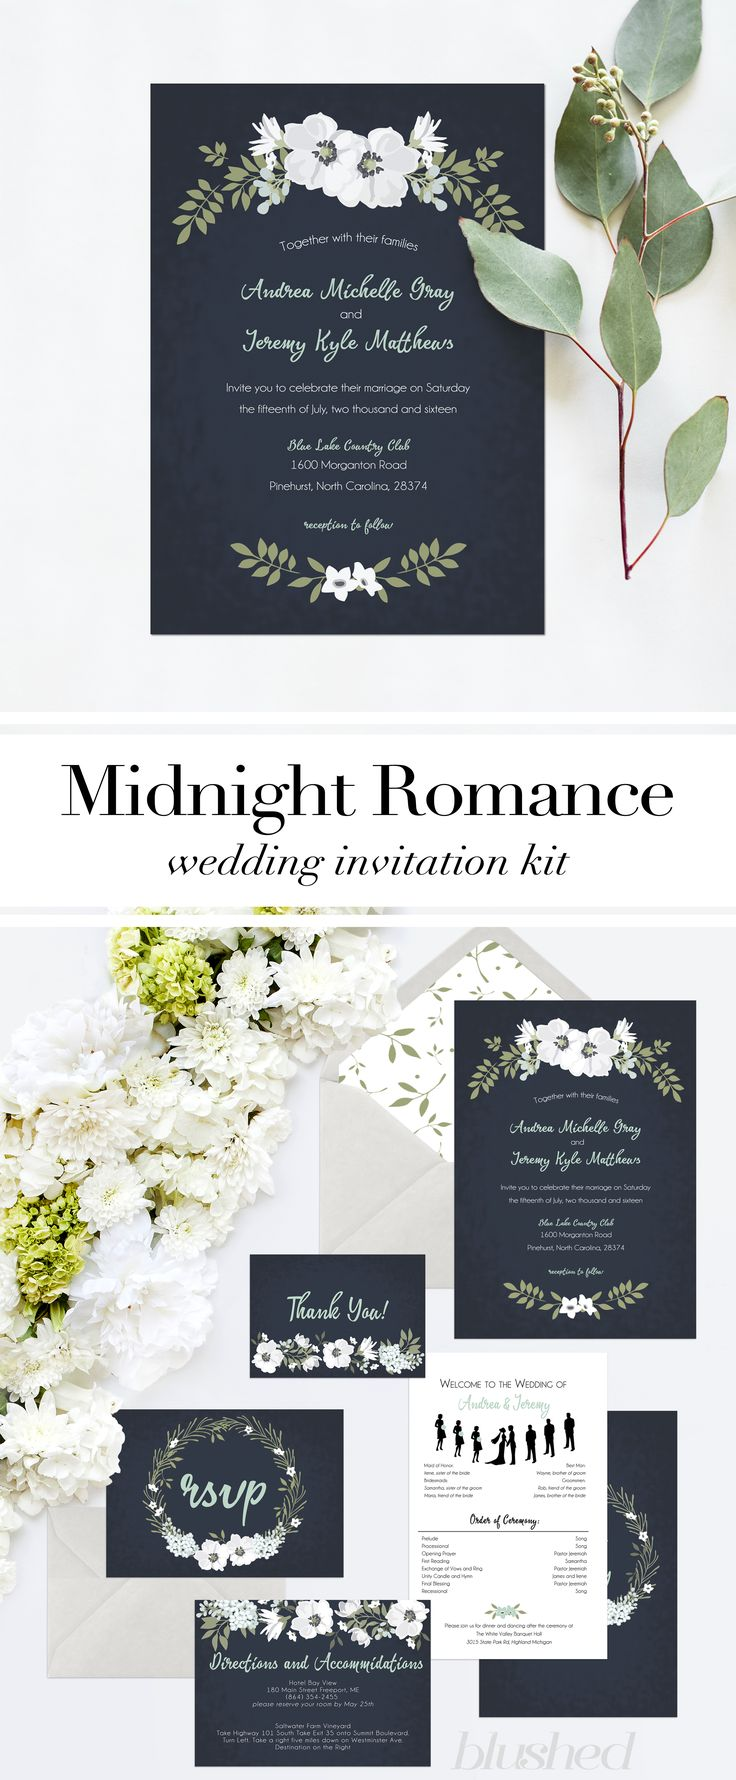 244 Best Wedding Invitation A Images On Pinterest Wedding